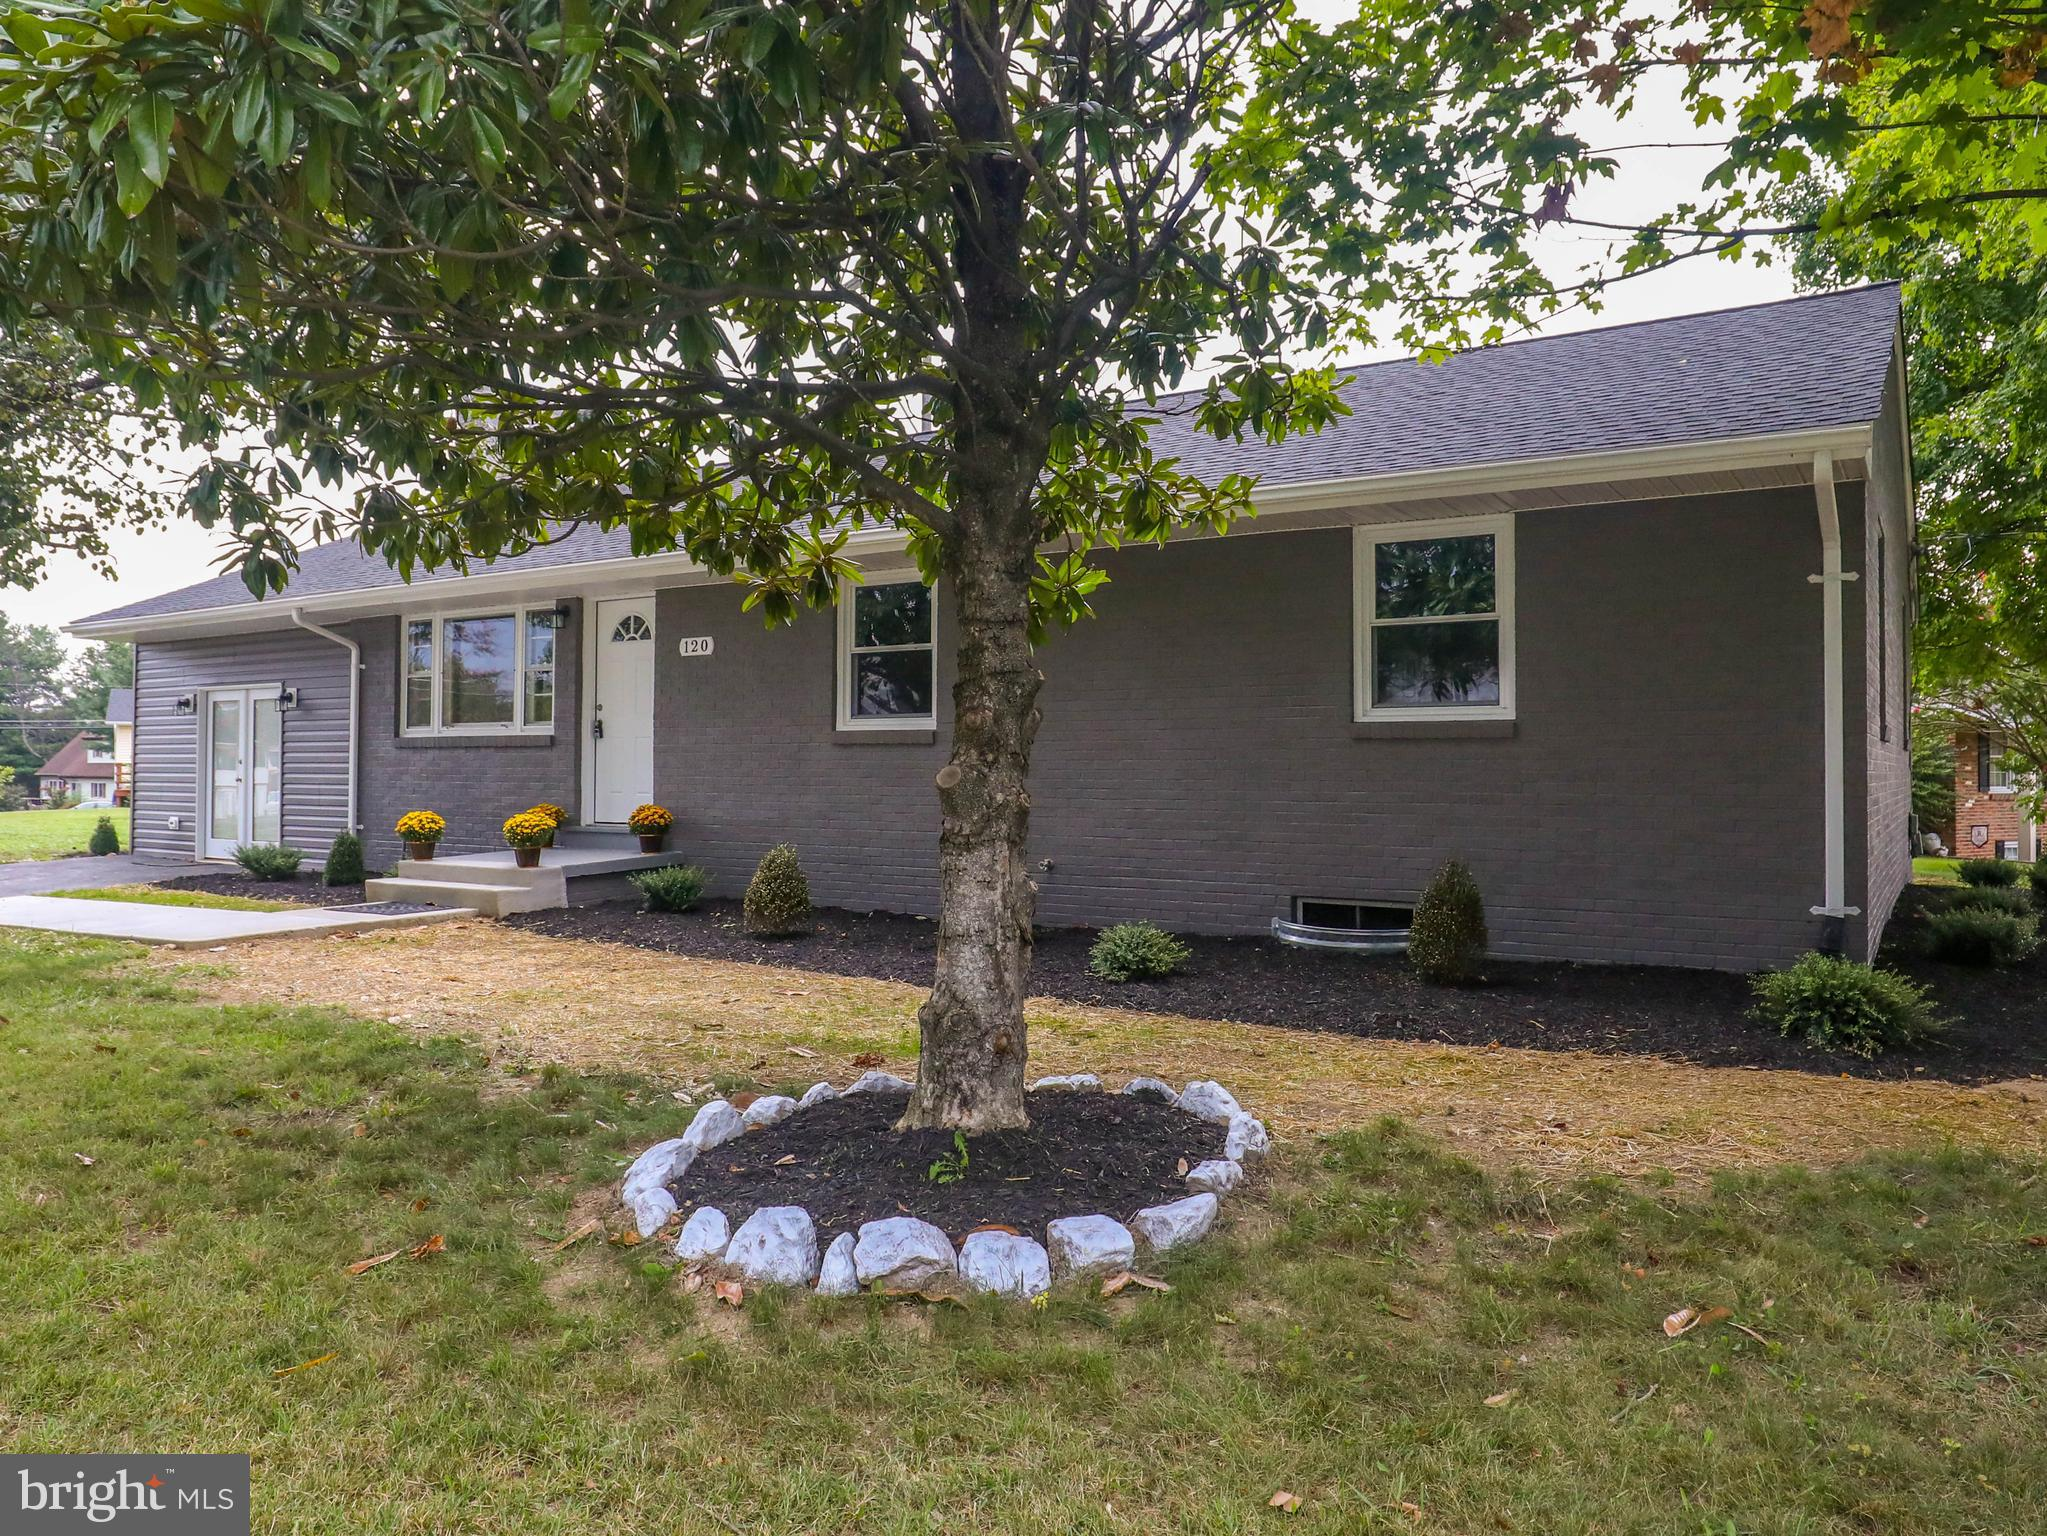 BRAND NEW & WAITING FOR YOU! This beautifully FULLY RENOVATED home in Shenandoah Hills! This home is